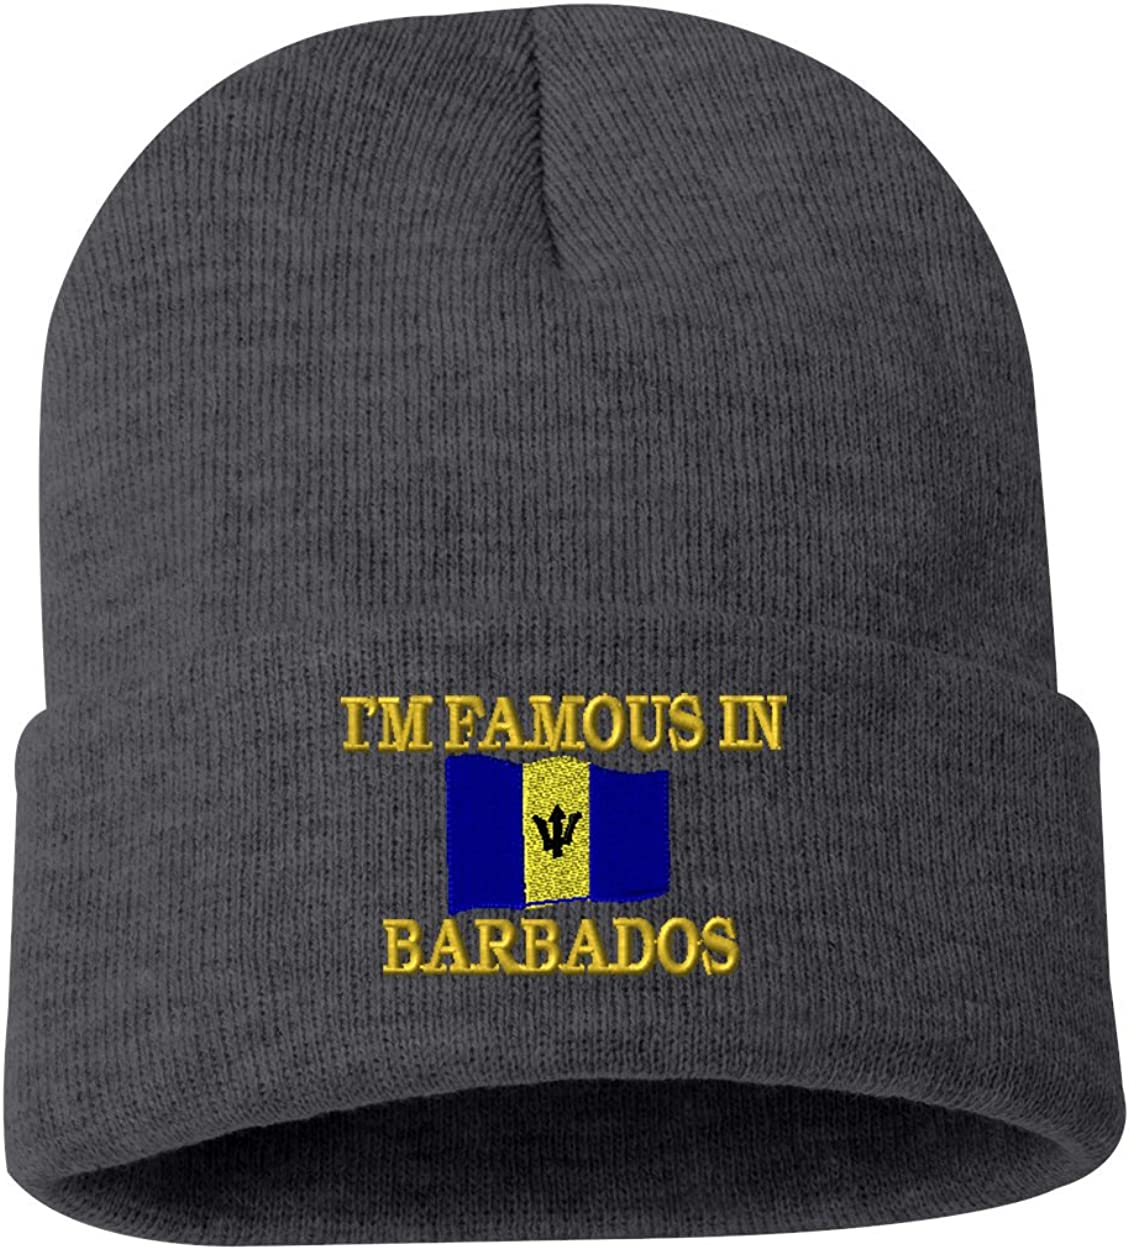 IM FAMOUS IN BARBADOS Custom Personalized Embroidery Embroidered Beanie